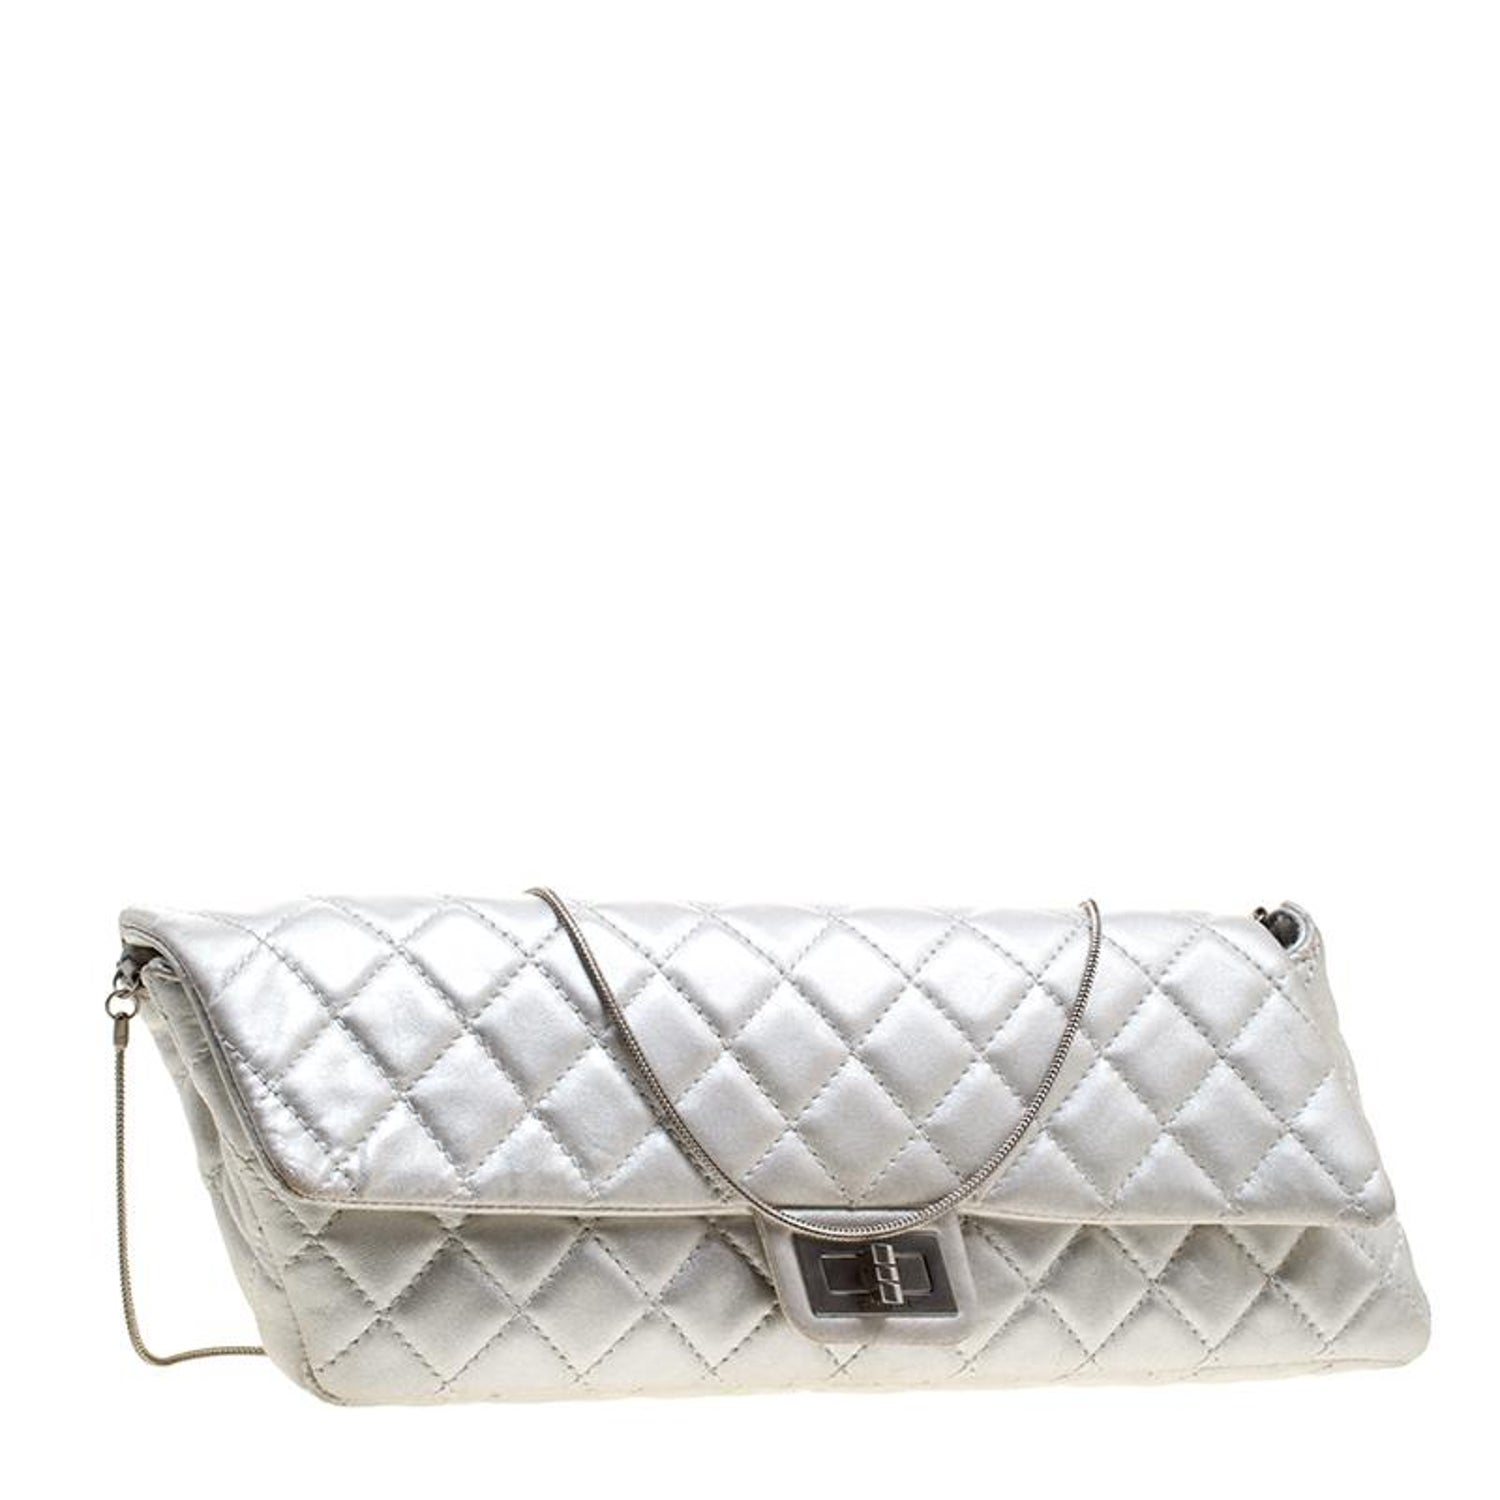 98cb5d4734af8c Chanel Silver Quilted Leather Reissue Chain Clutch For Sale at 1stdibs